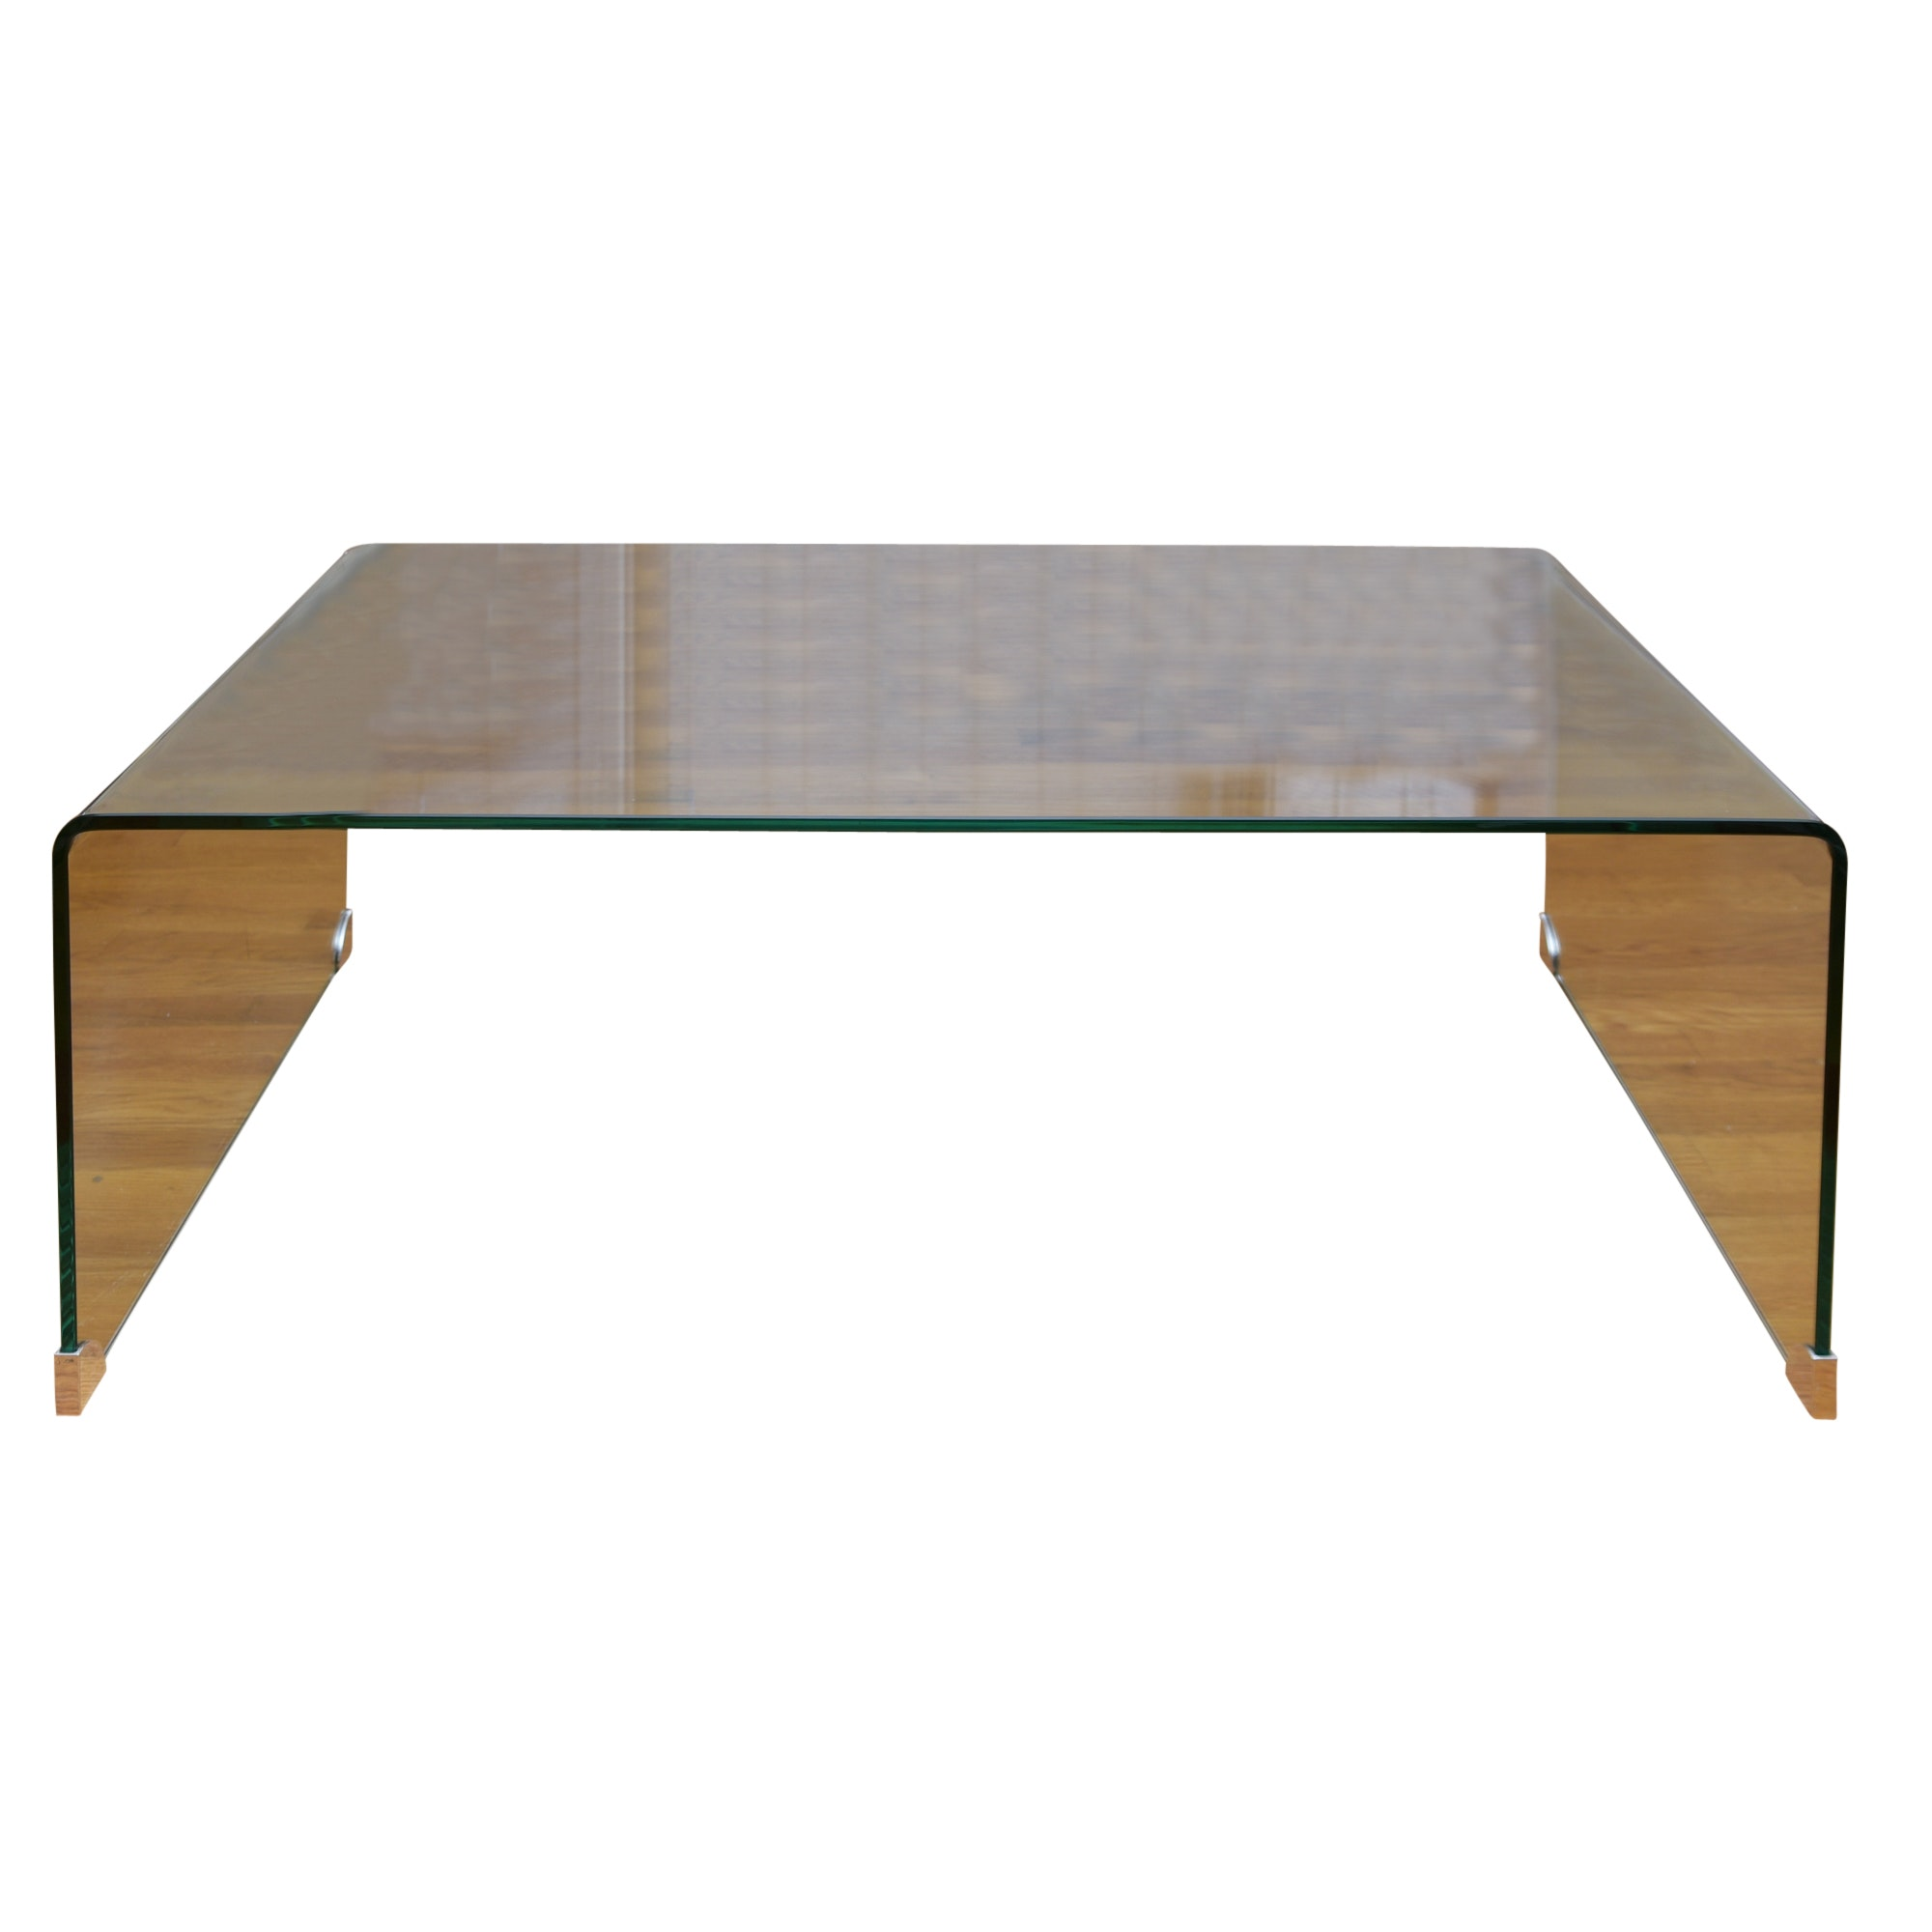 Molded Tempered Glass Coffee Table